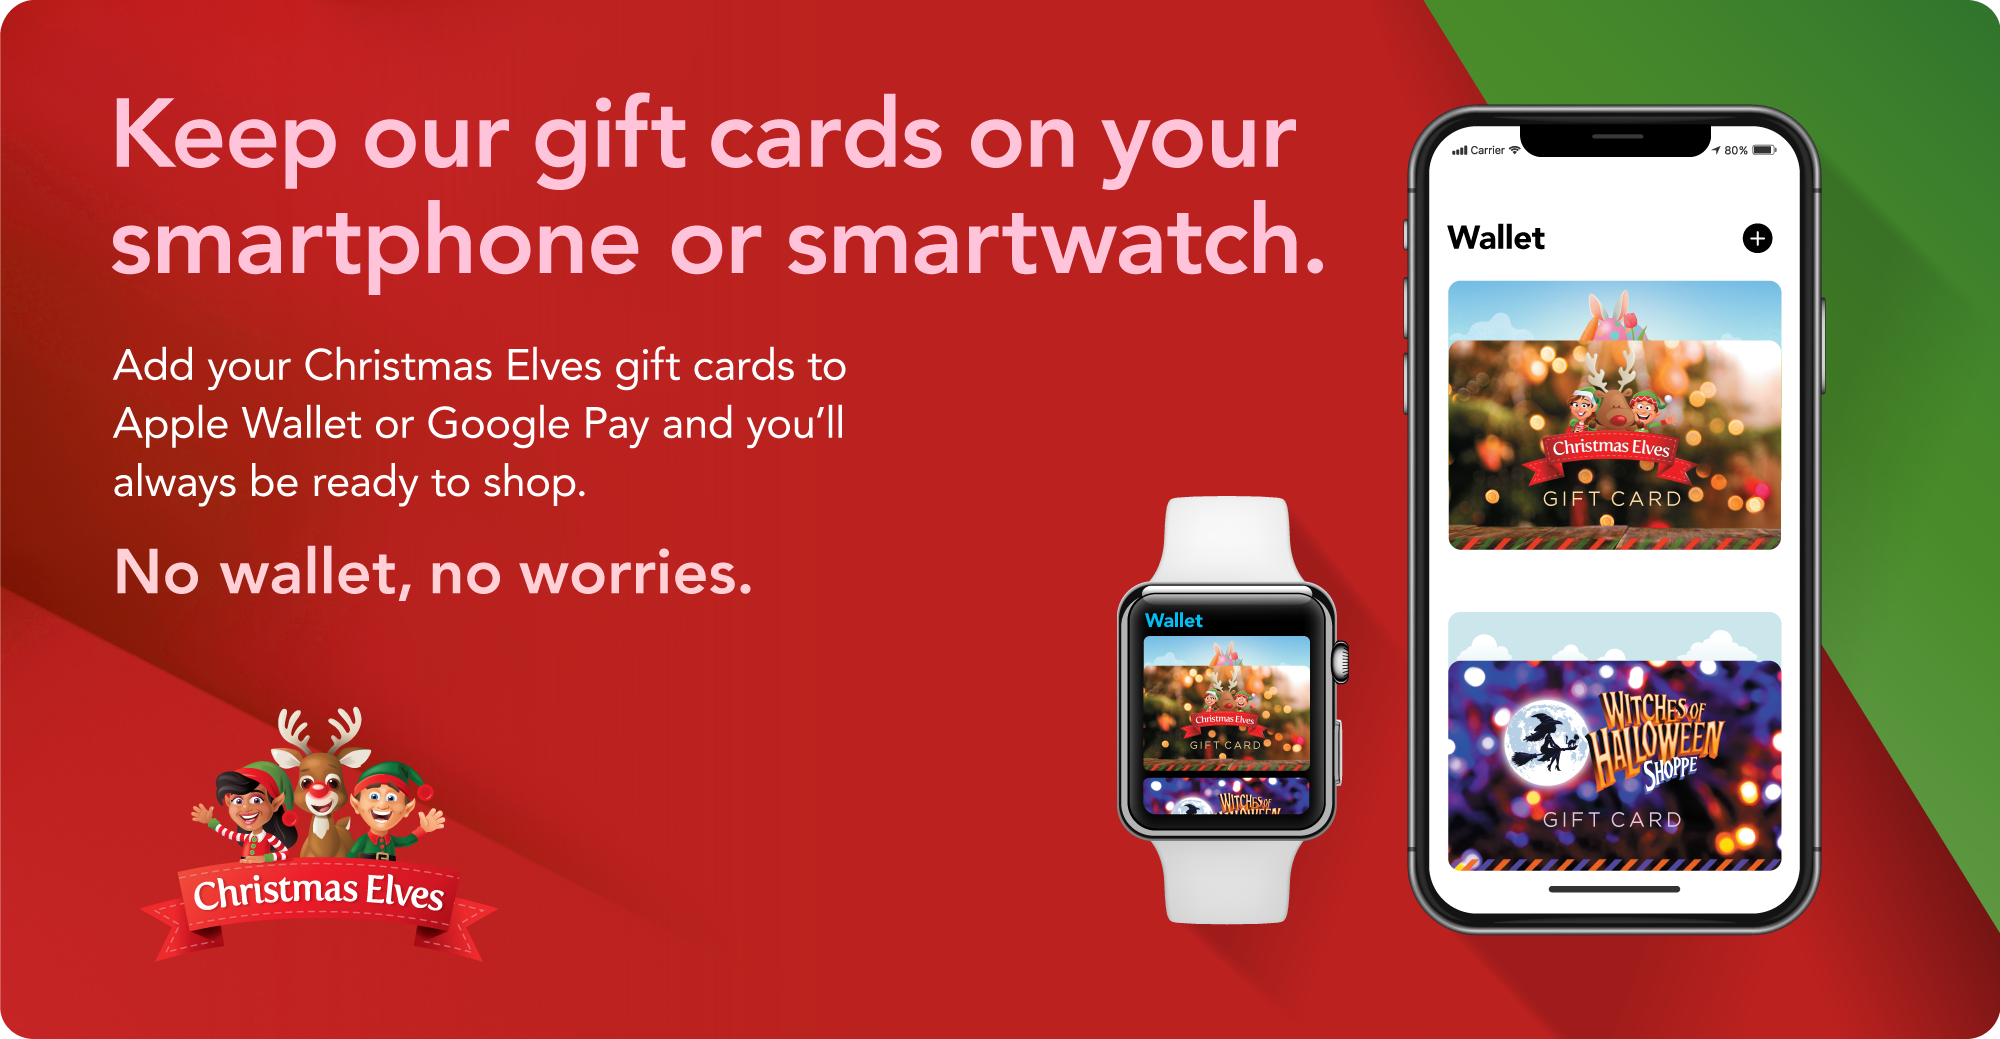 Christmas Elves Group Gift Cards: The Perfect Gift!